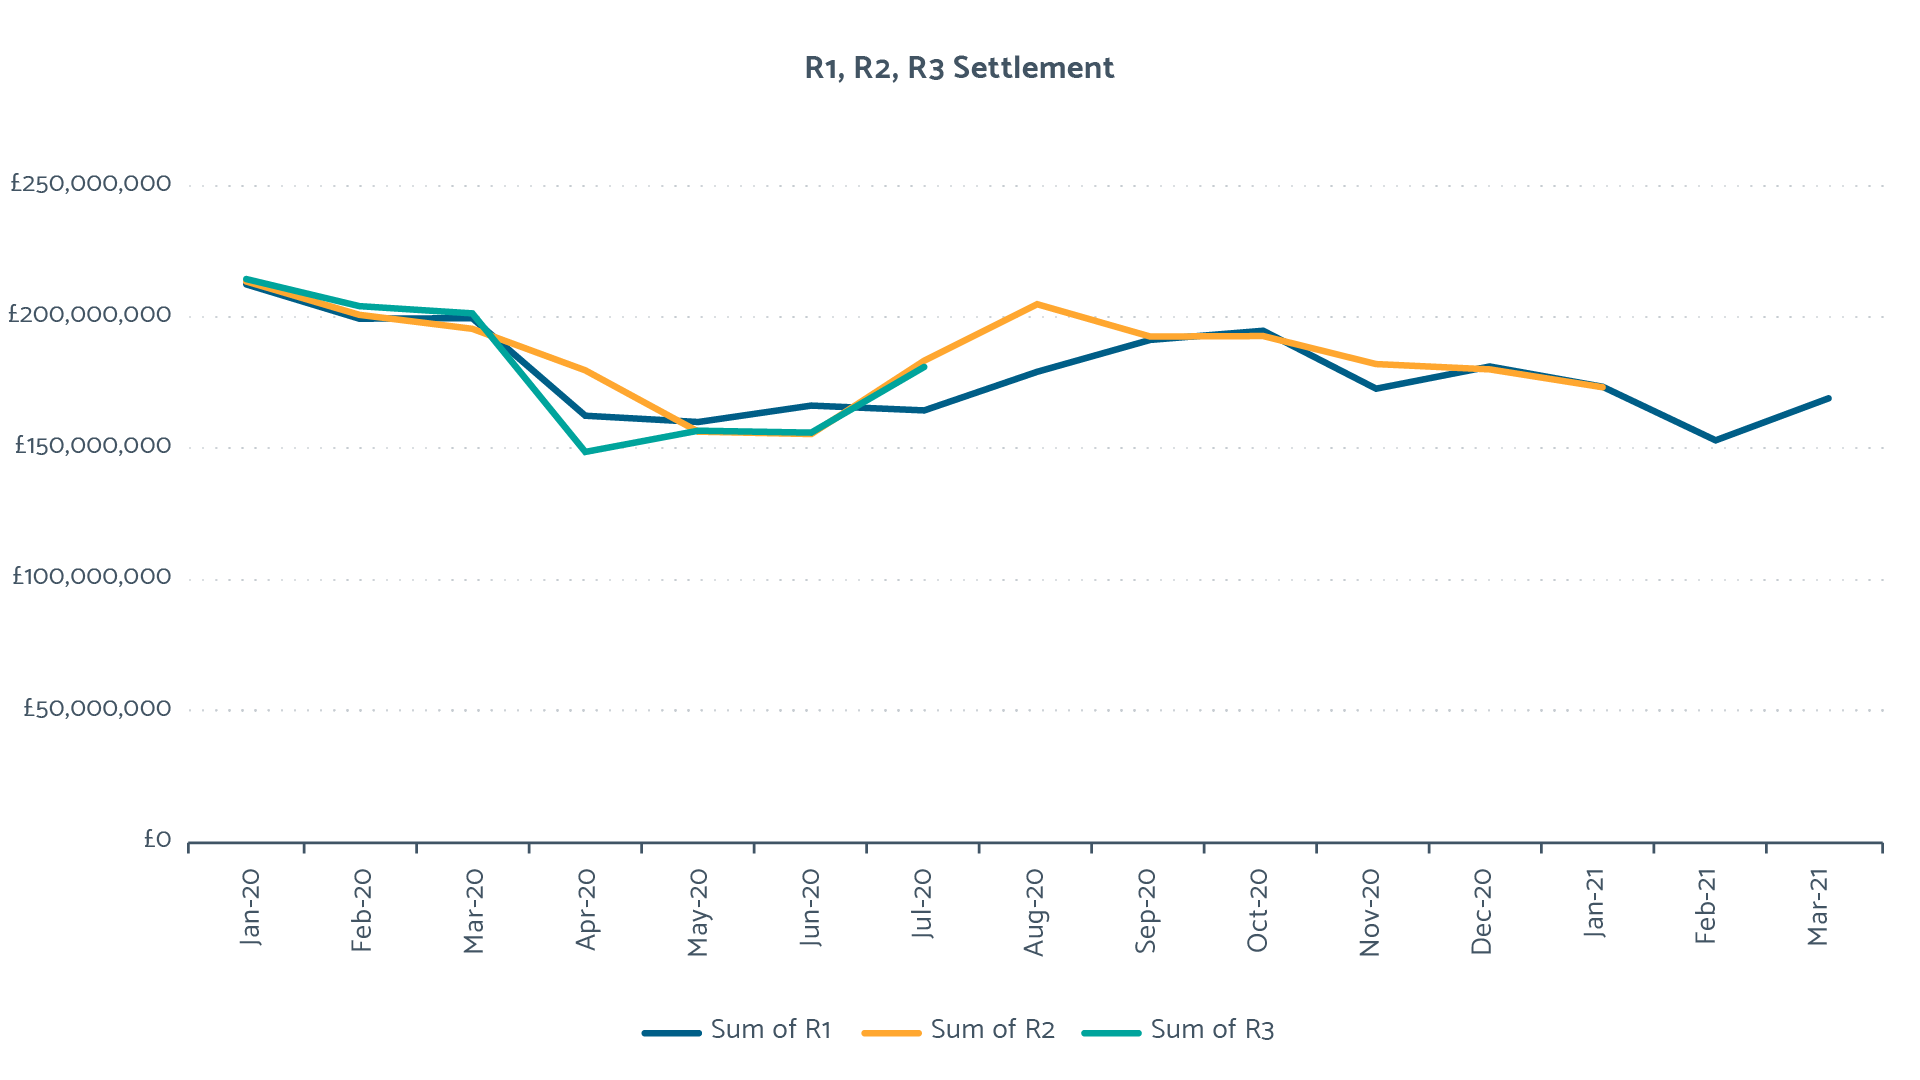 R1, R2 and R3 Settlement Graph